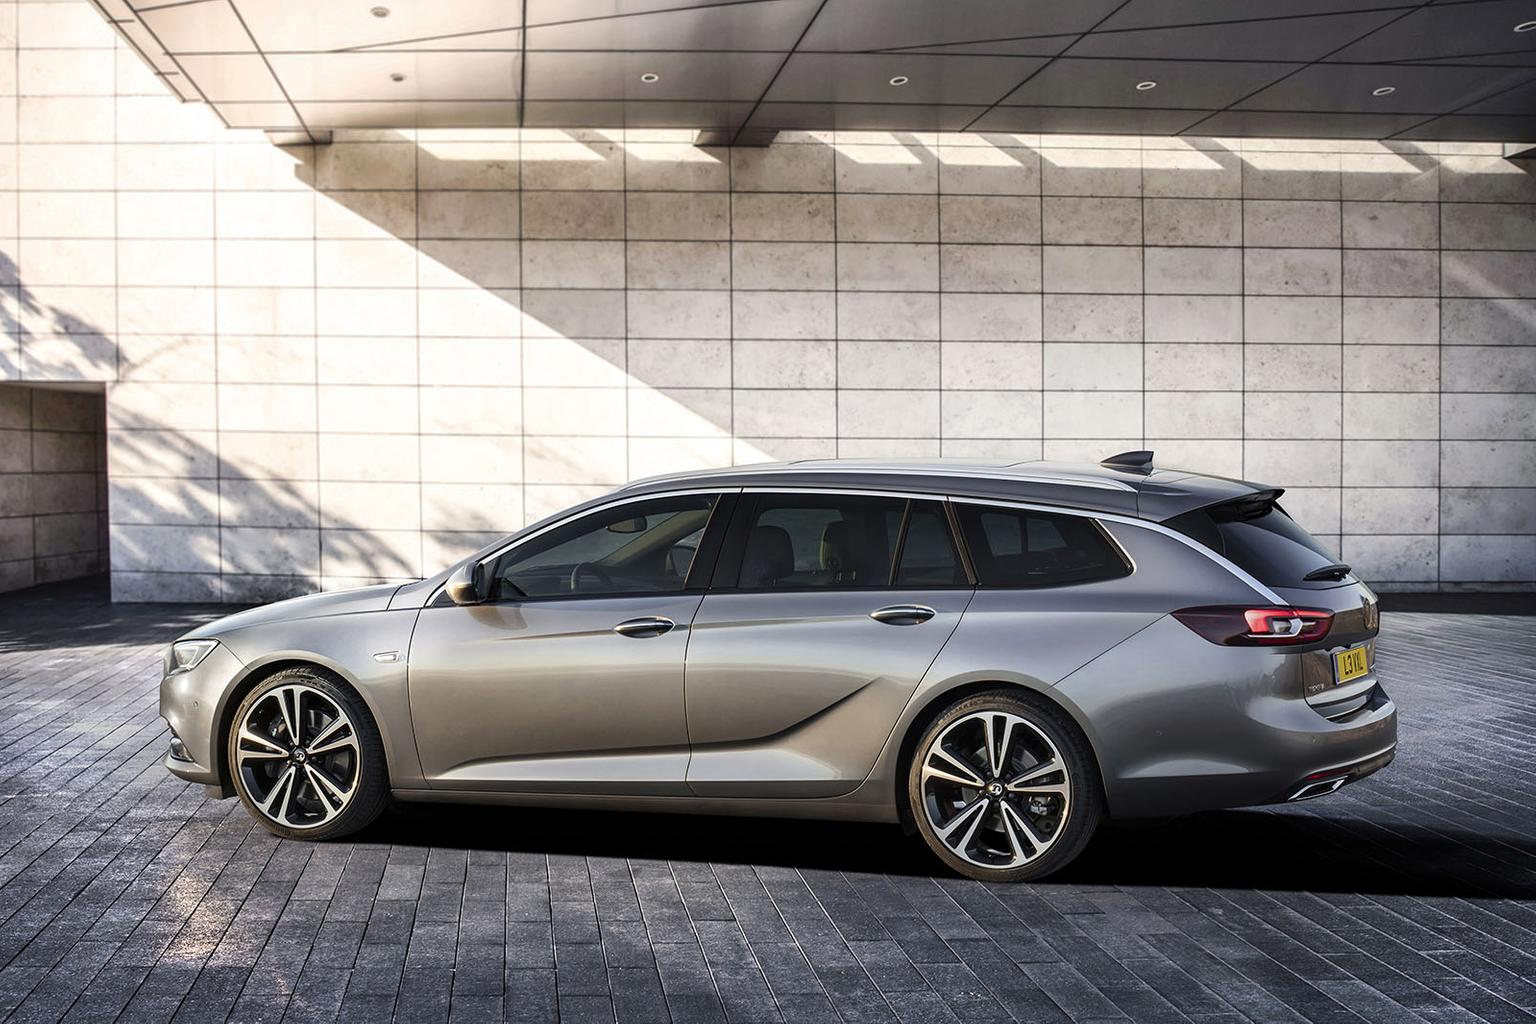 New Vauxhall Insignia Sports Tourer to arrive this summer